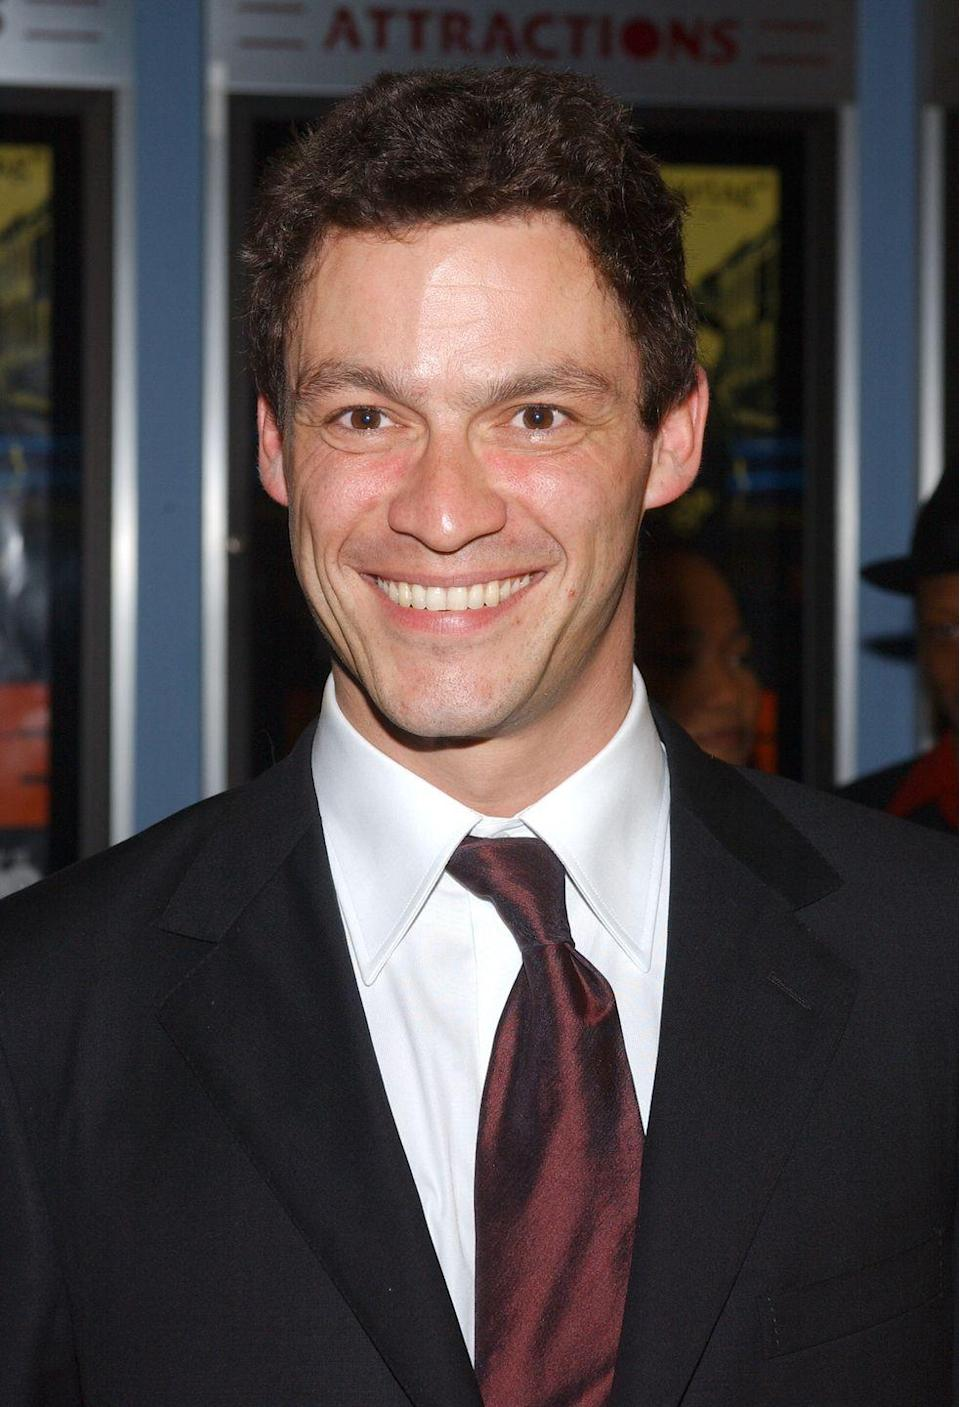 """<p>The British actor starred as Detective Jimmy McNulty and was often praised for the accuracy of his American accent during his time on the series. He told <a href=""""https://www.youtube.com/watch?v=FdbWsX6h4eo"""" rel=""""nofollow noopener"""" target=""""_blank"""" data-ylk=""""slk:Absolute Radio"""" class=""""link rapid-noclick-resp""""><em>Absolute Radio</em></a> that it took """"a lot of coaching"""" to hide his lifelong British accent and adapt to his role as a boozy Baltimore detective. </p><p>""""Whenever I open my mouth in a room full of <em>Wire</em> fans, I'm used to a sort of deflation of like, 'Oh dear, he's not McNulty,'"""" he said. """"It's nice that people thought I was American, otherwise, it wouldn't have worked, would it?""""</p>"""